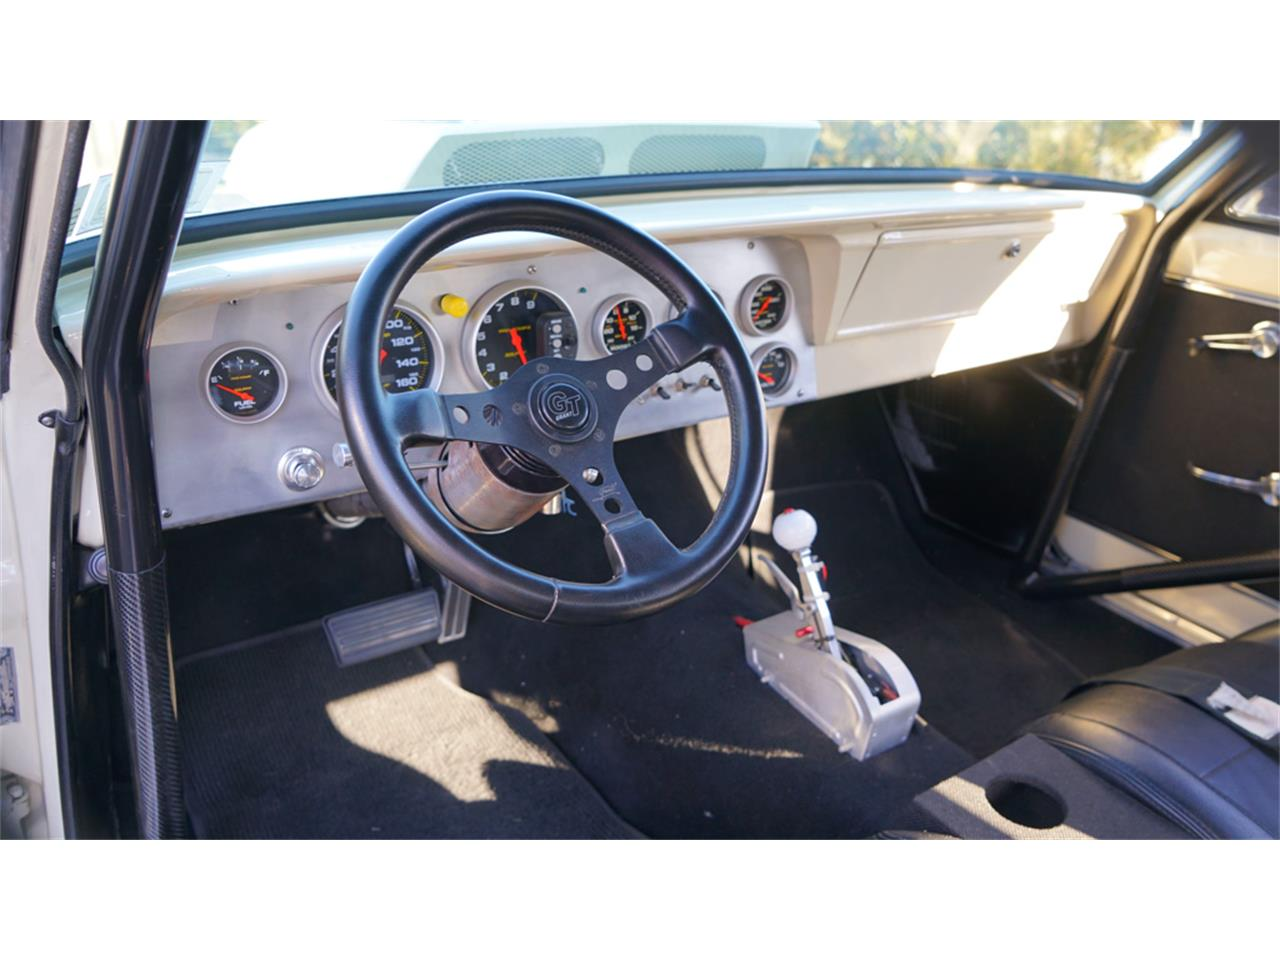 Large Picture of '66 Chevrolet Chevy II Nova - $57,900.00 Offered by Fiore Motor Classics - PH1L